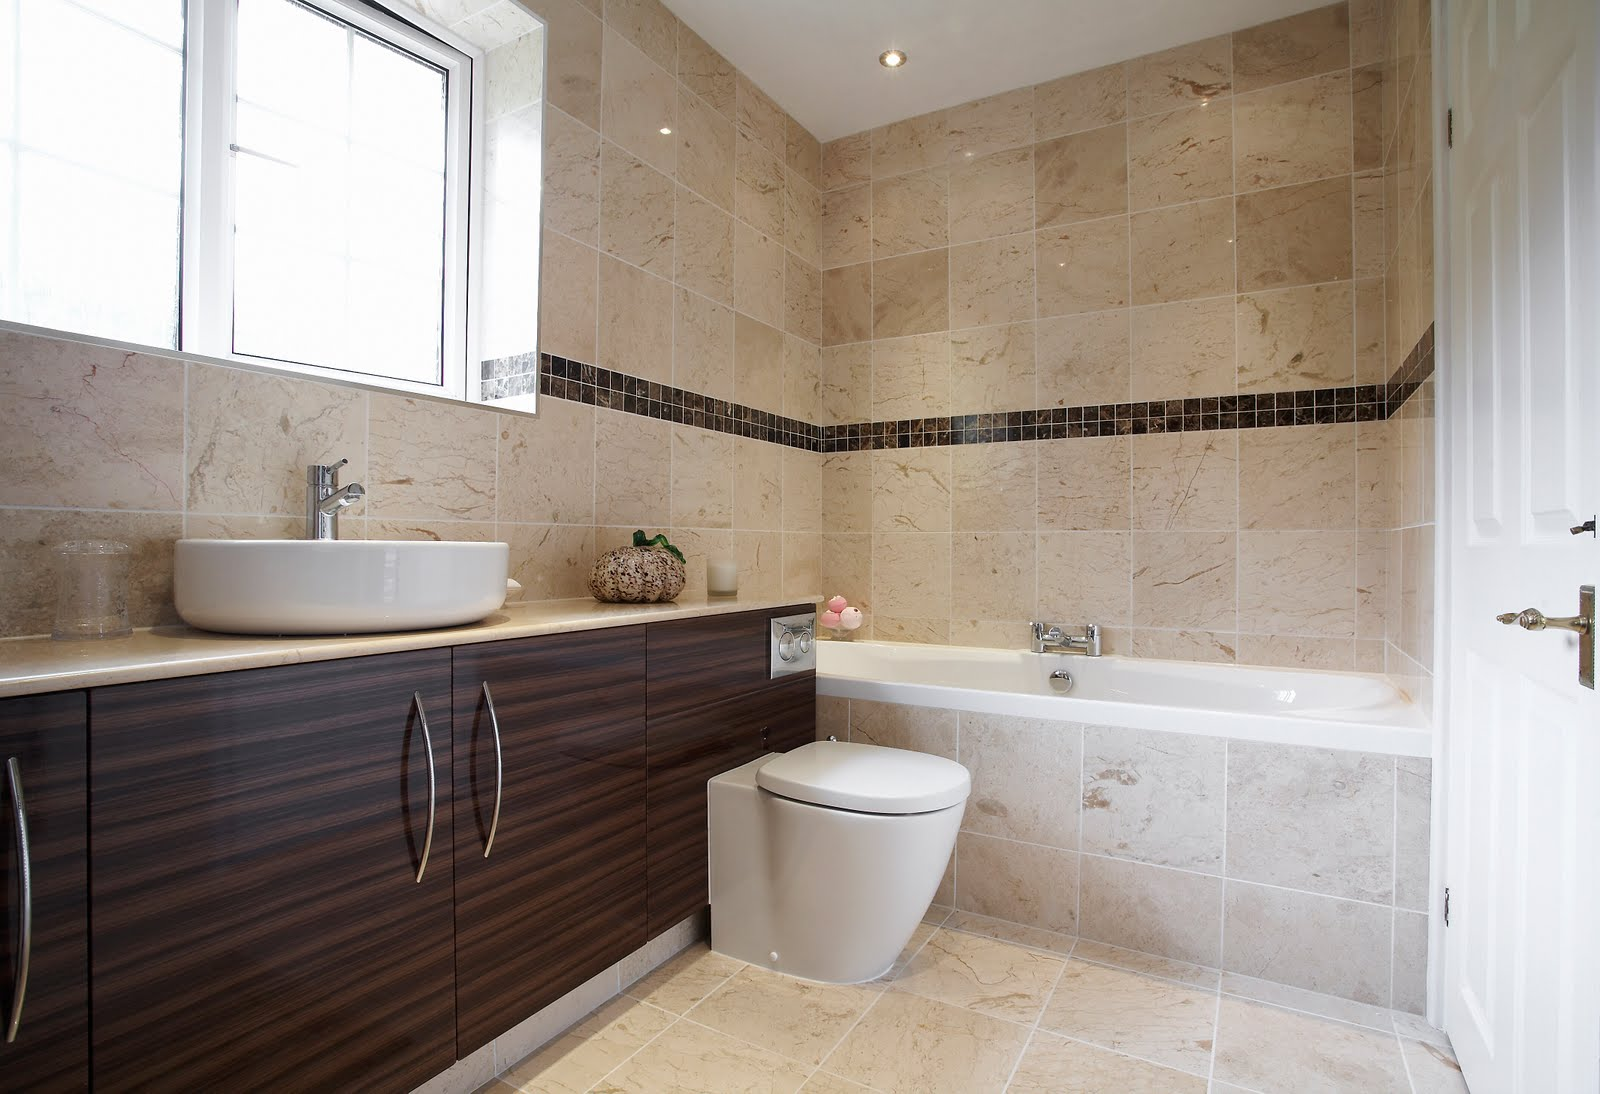 Cymru kitchens ltd cymru kitchens bathrooms - Pictures of bathroom designs ...